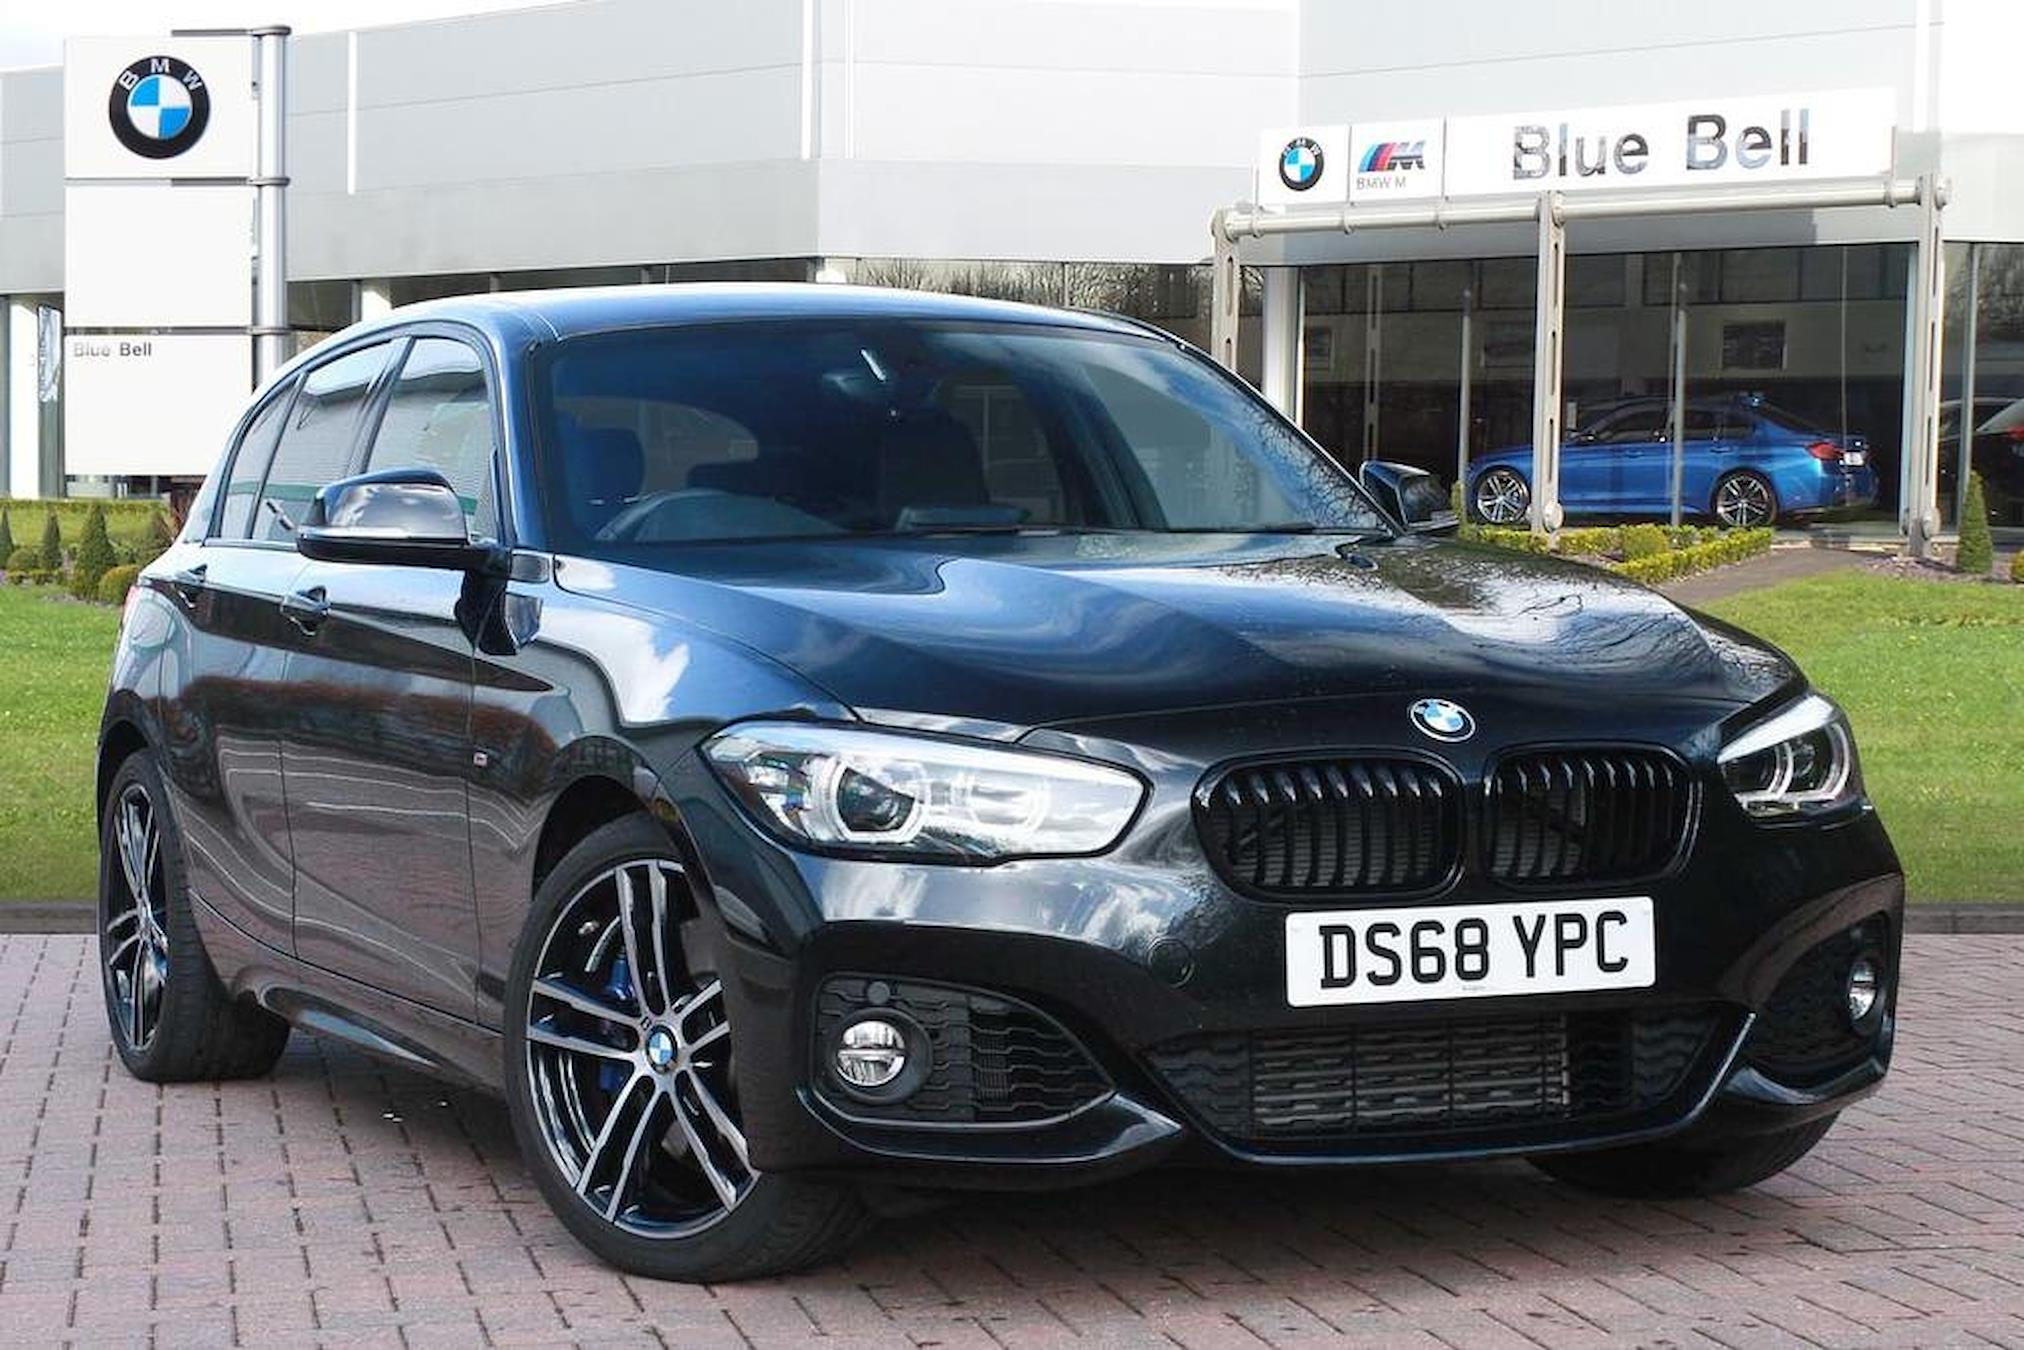 Nearly New 1 Series Bmw 118i M Sport Shadow Edition 5 Door